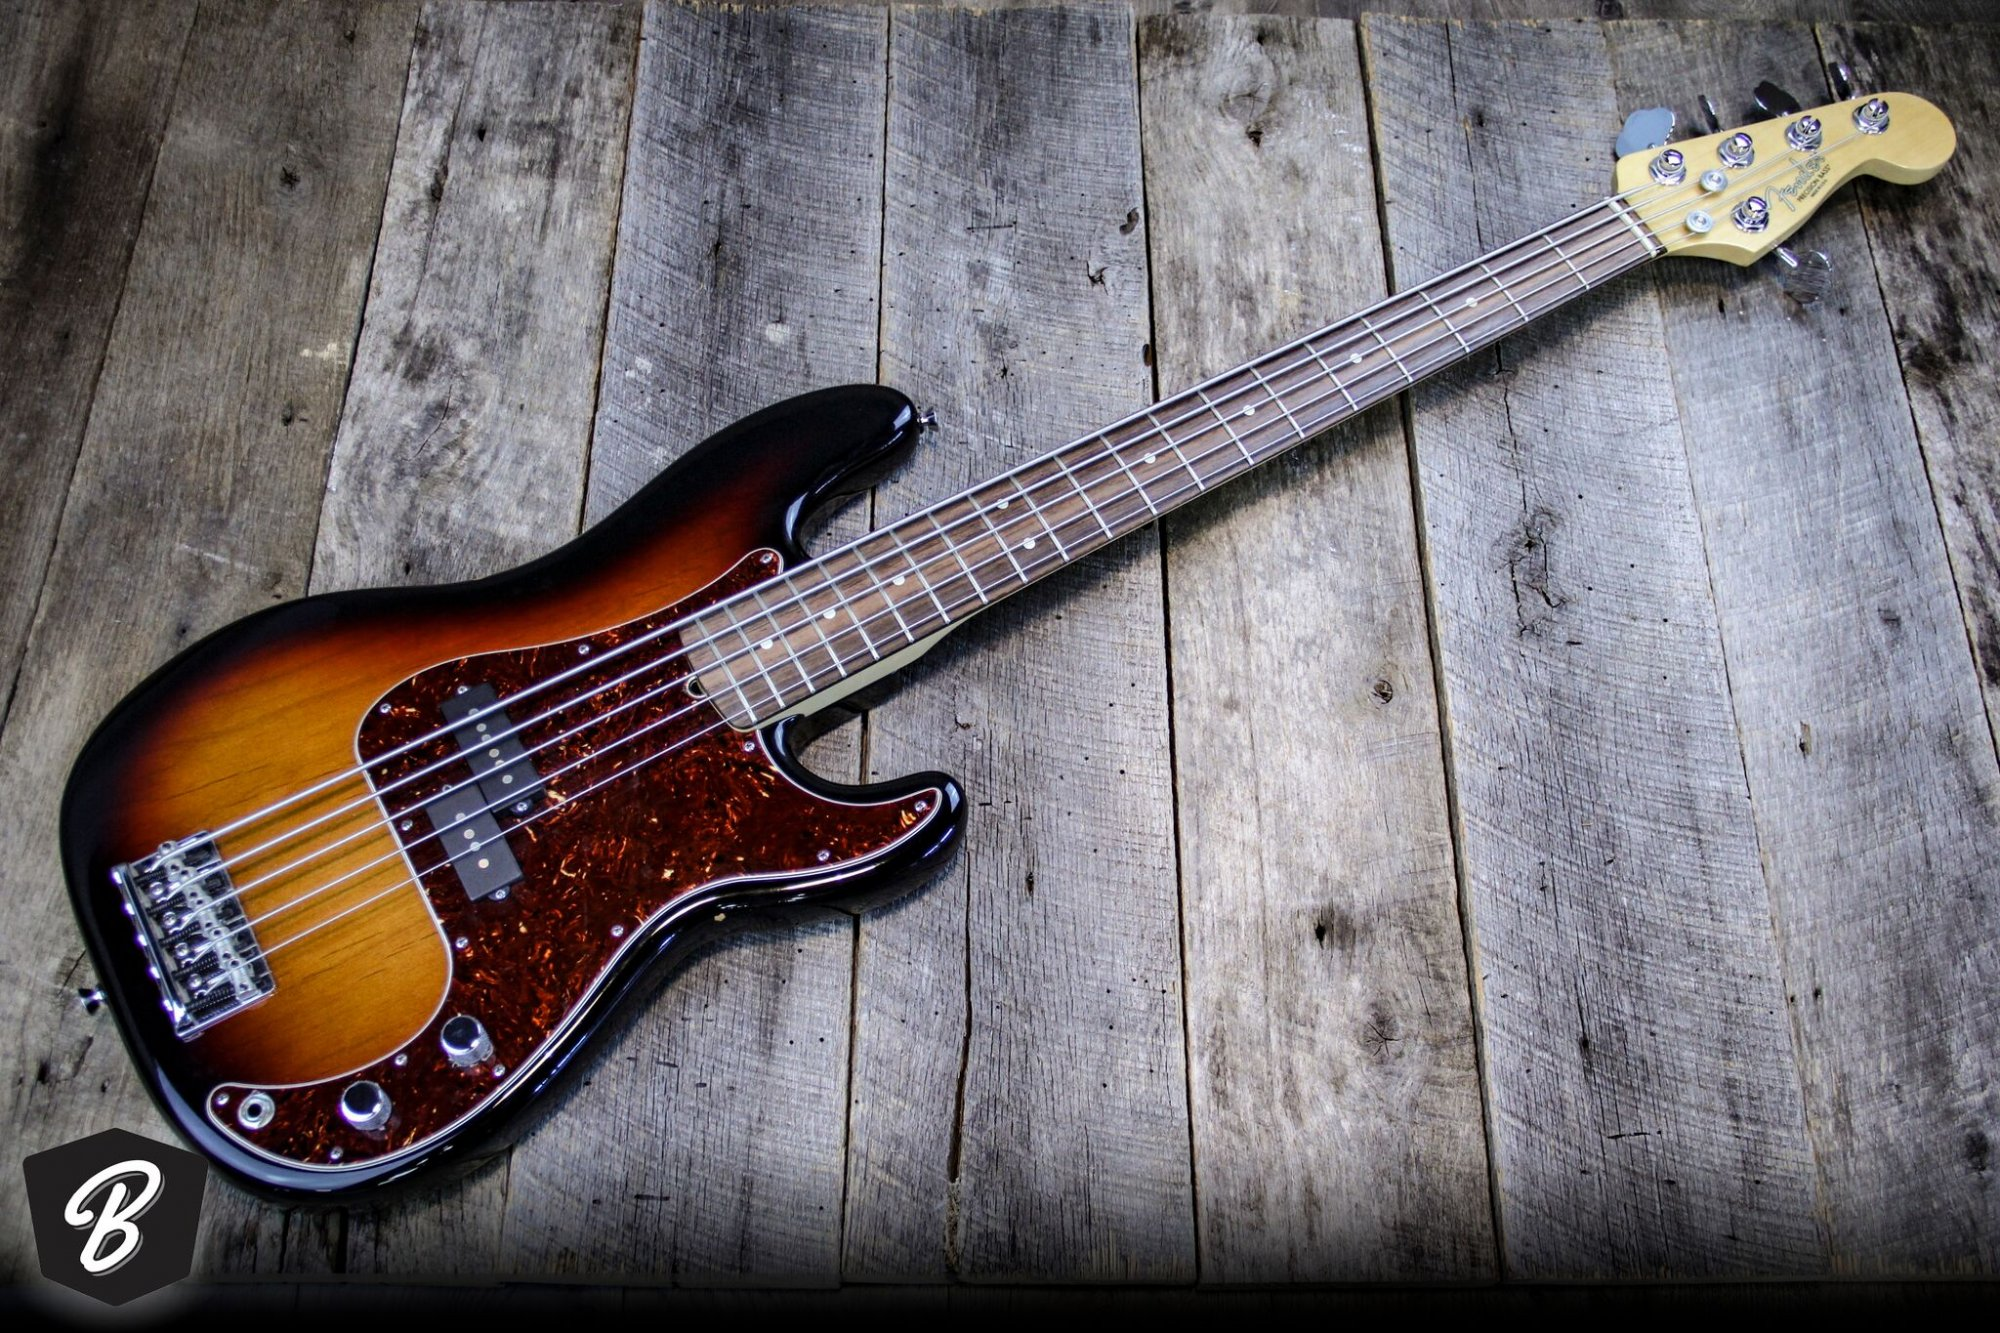 Fender Precision 5-string Bass in Sunburst